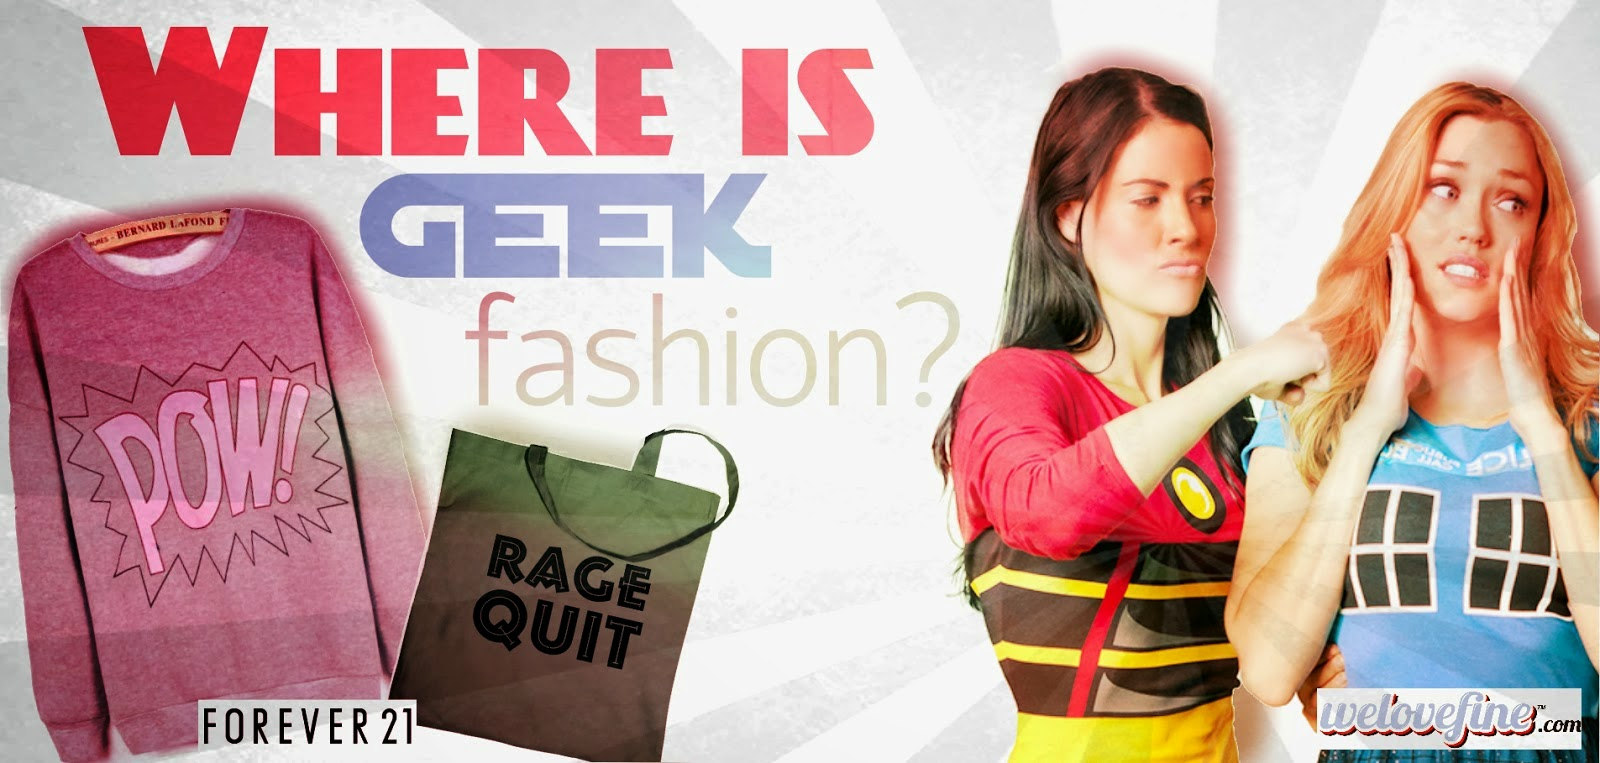 http://kerryshabitat.blogspot.co.uk/2014/01/geek-fashion-forever-21-we-love-fine.html